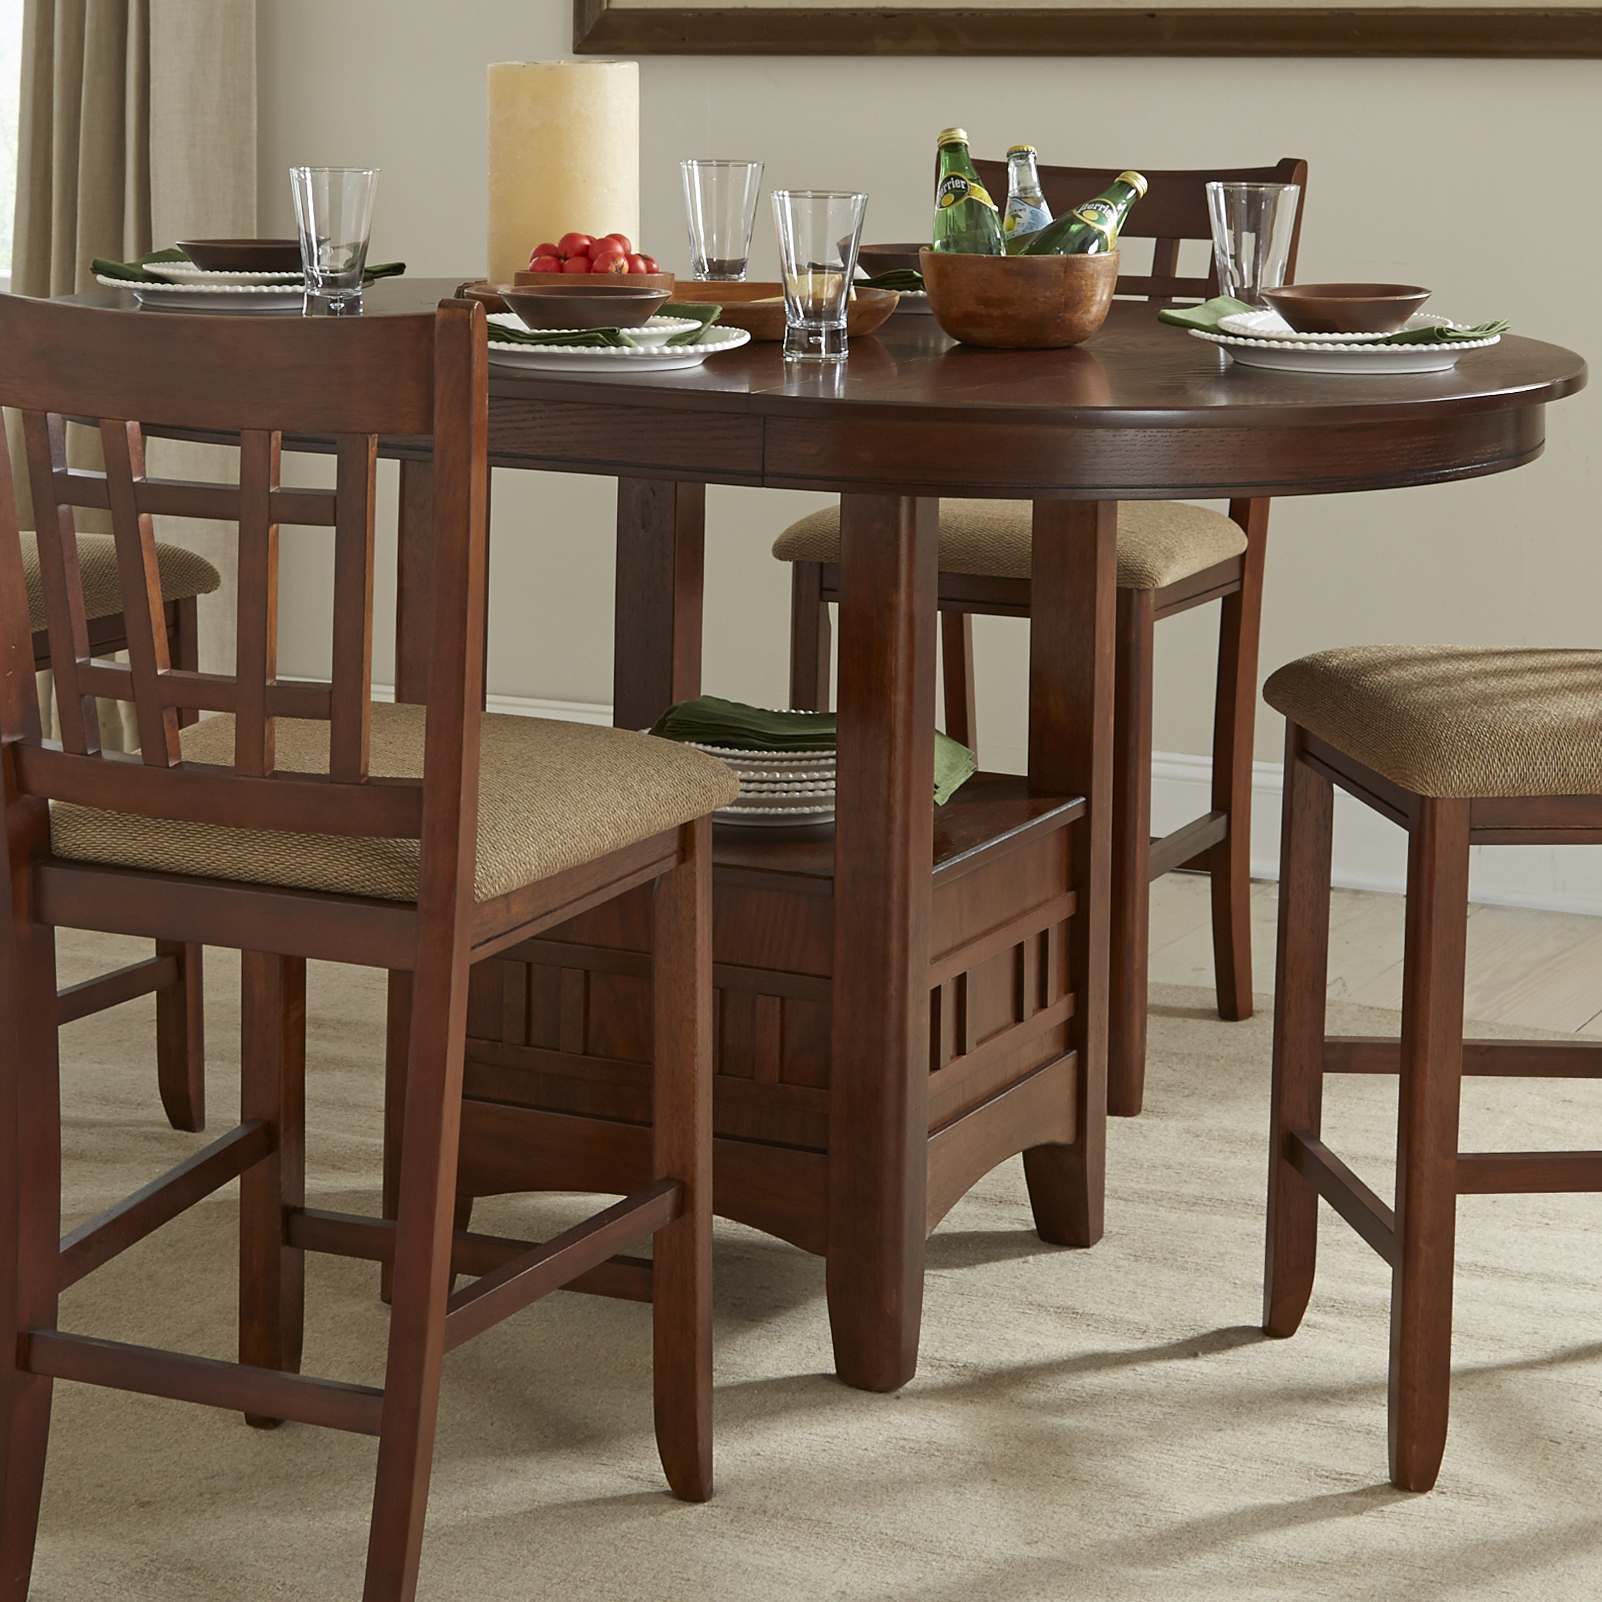 Dining Room Furniture Michigan: Intercon Mission Casuals Pedestal Gathering Table With